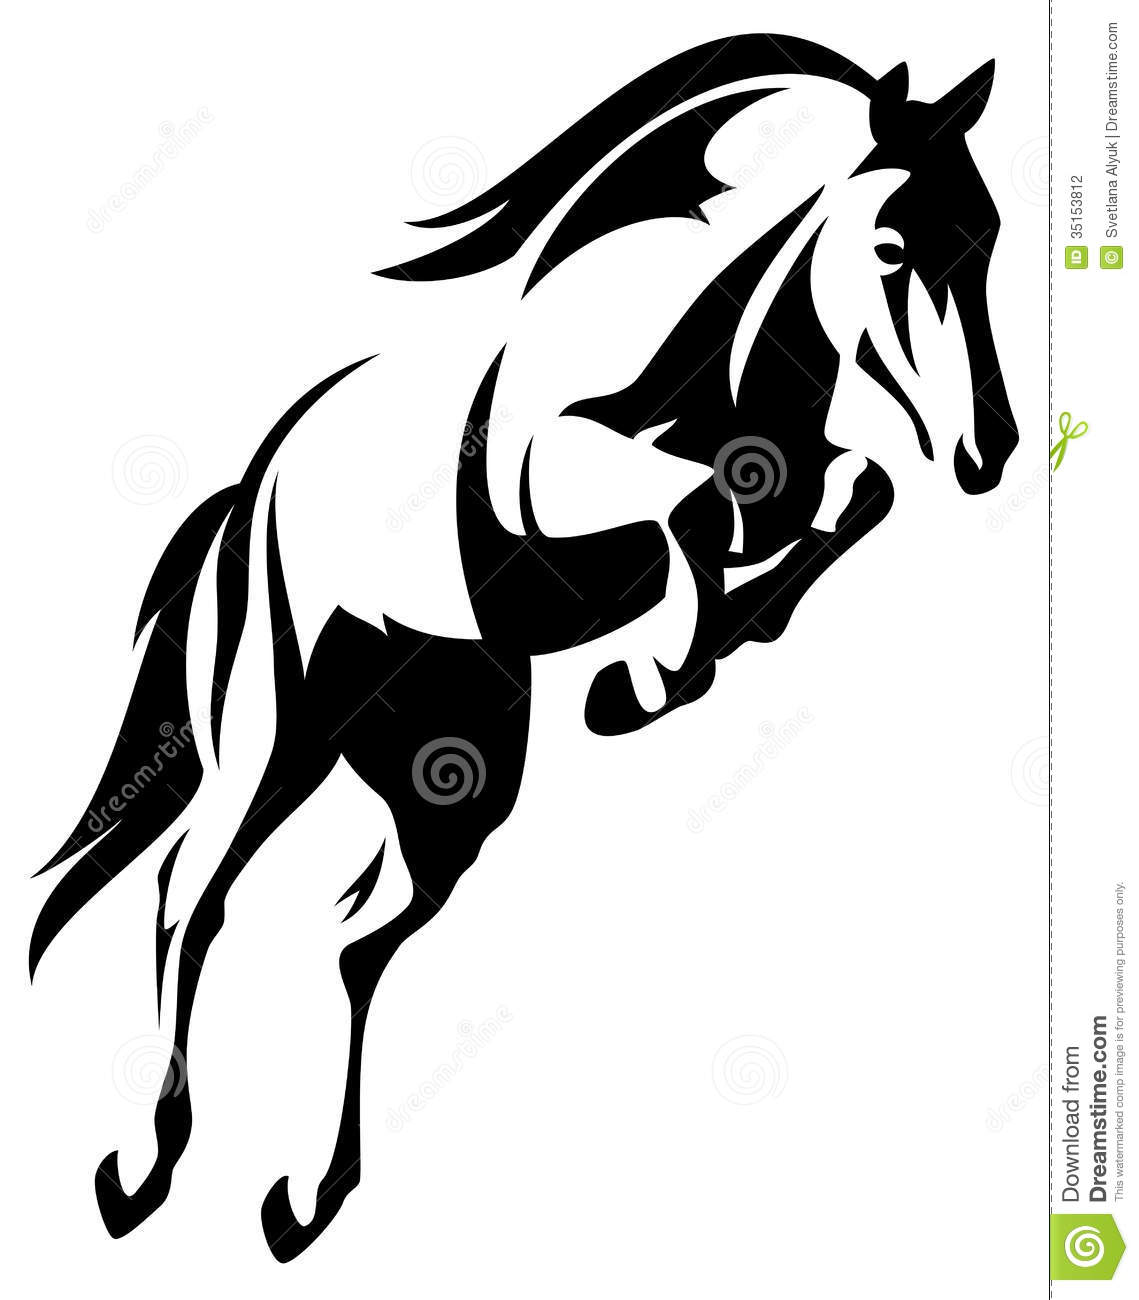 Horse Jump Vector Stock Photography - Image: 35153812